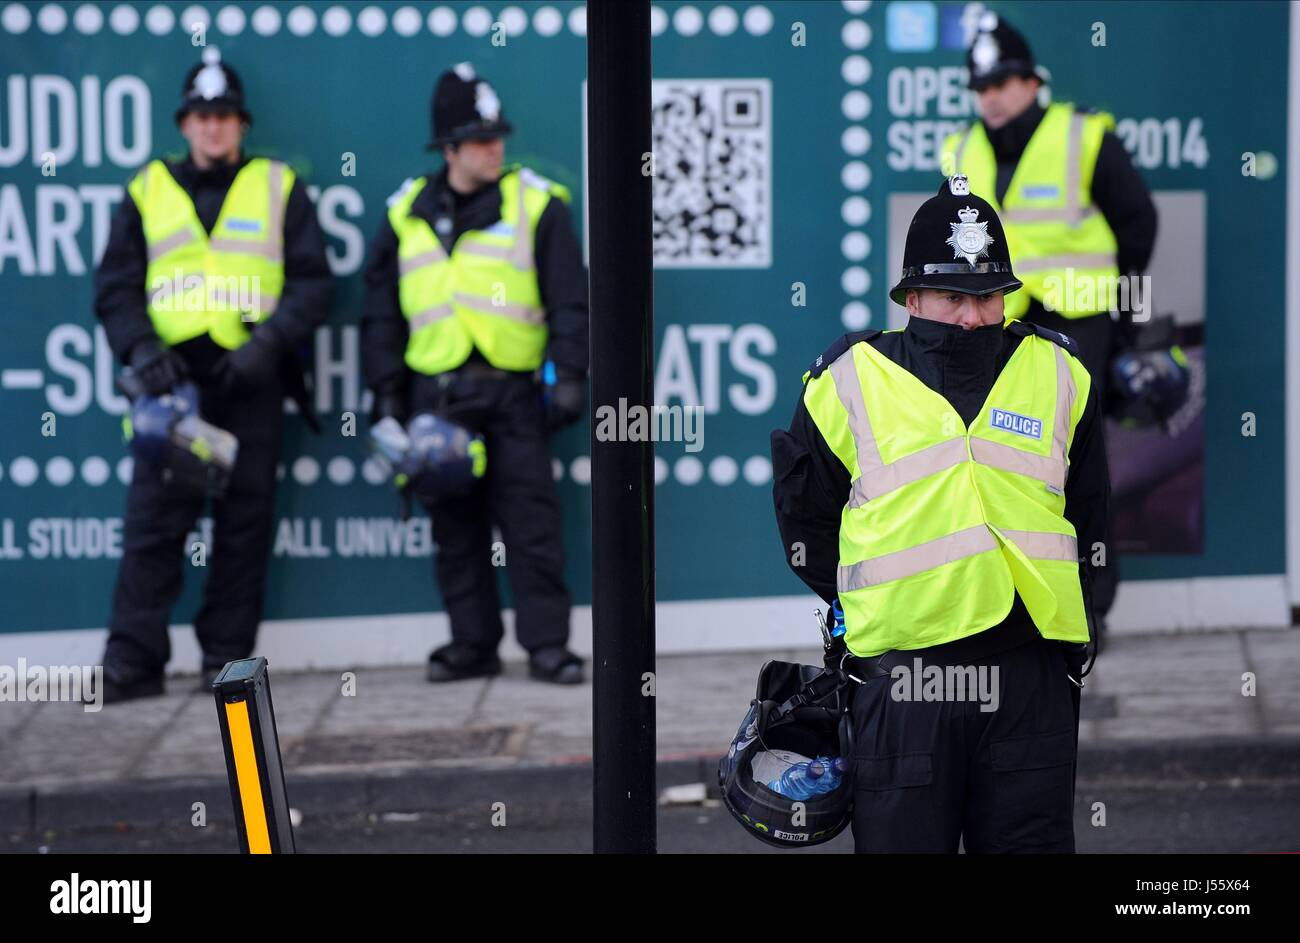 POLICEMEN WITH RIOT HELMETS NEWCASTLE FC V NEWCASTLE FC V SUNDERLAND FC ST JAMES PARK NEWCASTLE ENGLAND 01 February - Stock Image